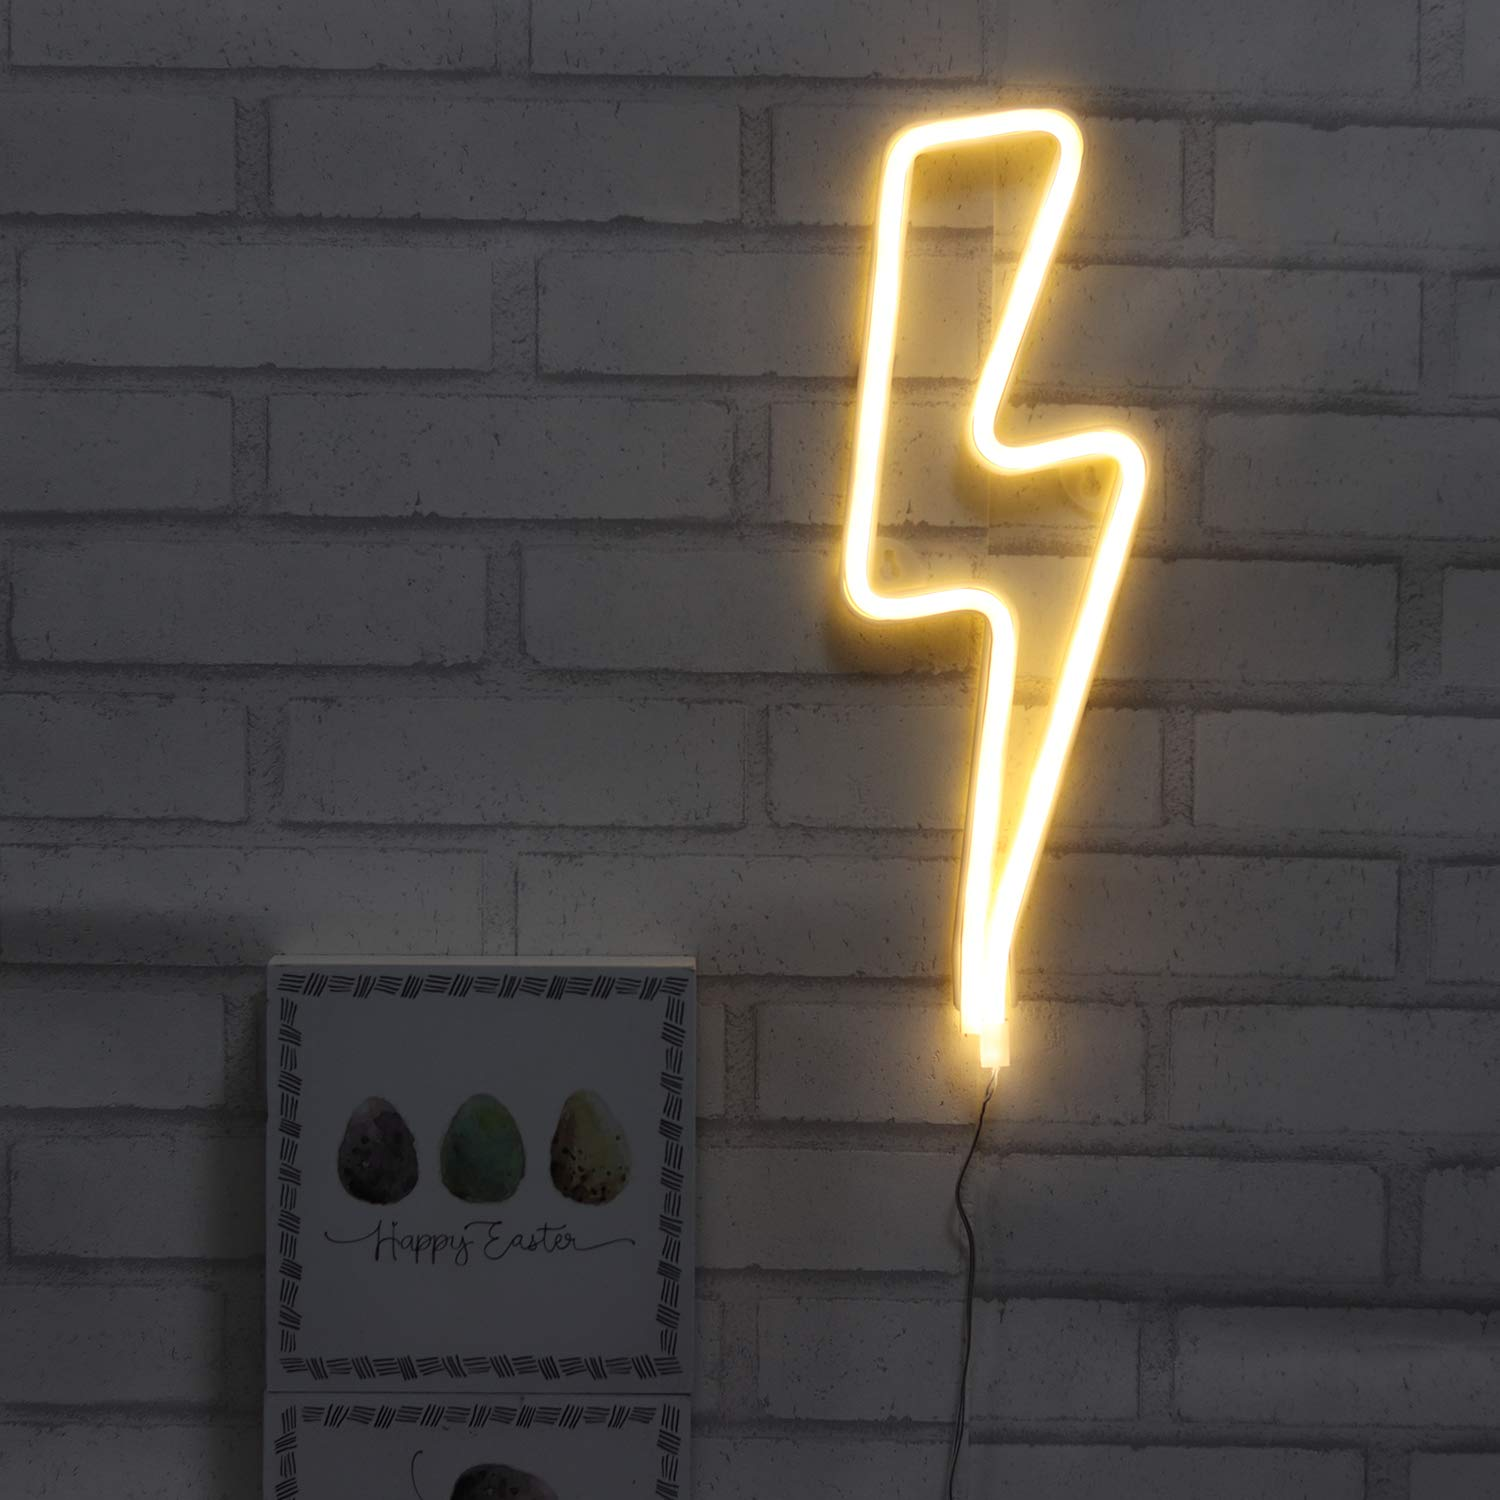 Nelnb Neon Signs Lightning Bolt Battery Operated And Usb Powered Warm White Art Led Decorative Lights Wall Decor For Living Room Office Christmas Wedding Party Decoration Tapestries Home